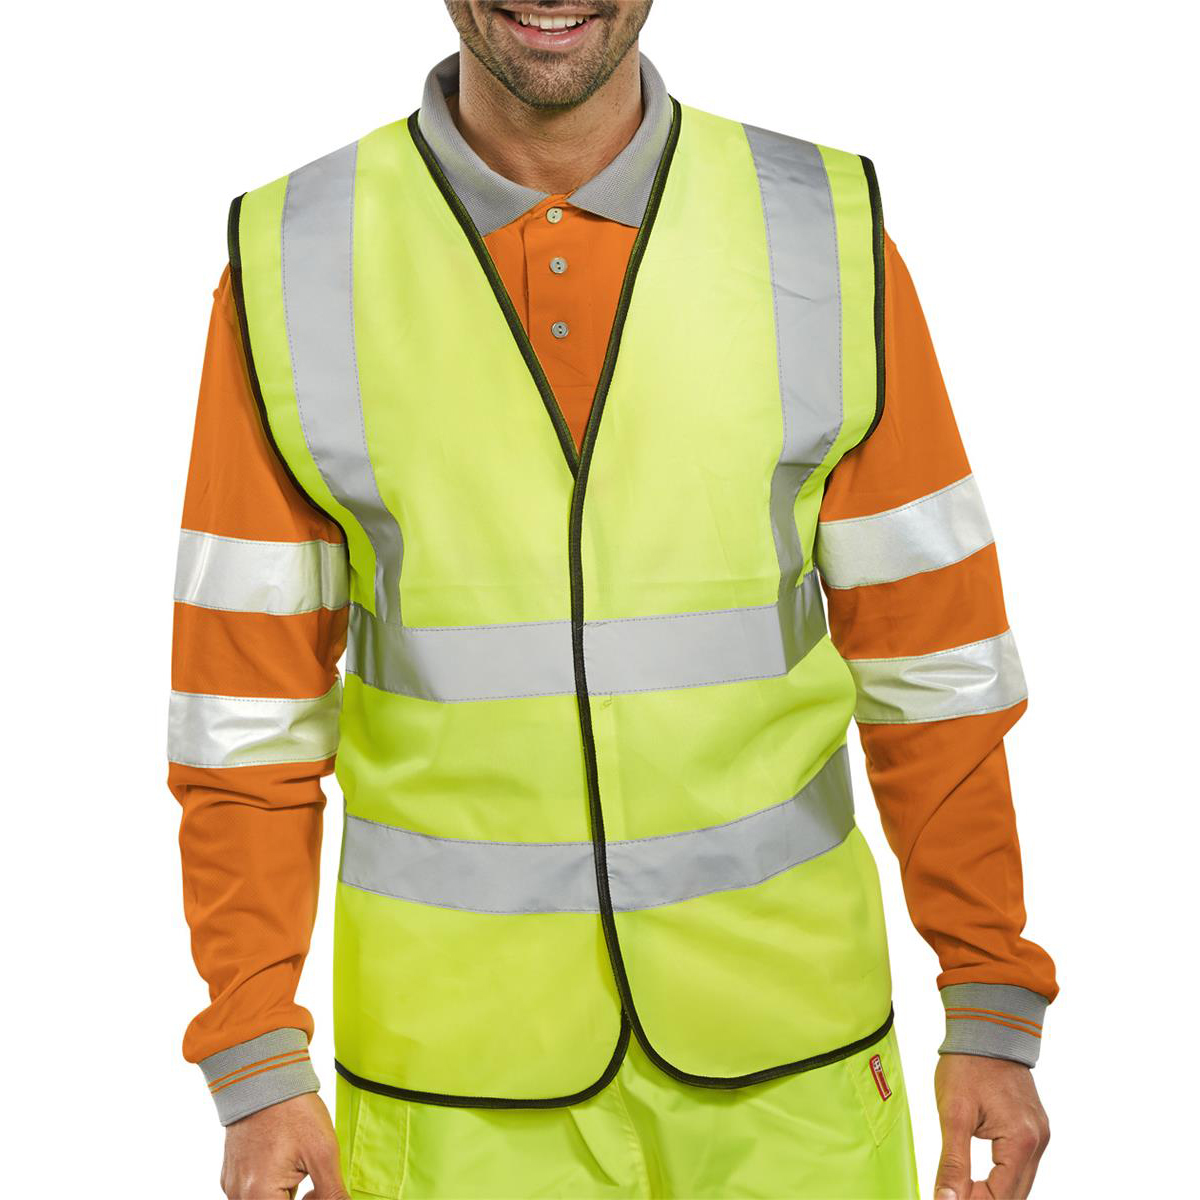 High Visibility Vest Polyester Yellow With Black Piping Medium Approx 2/3 Day Lead Time